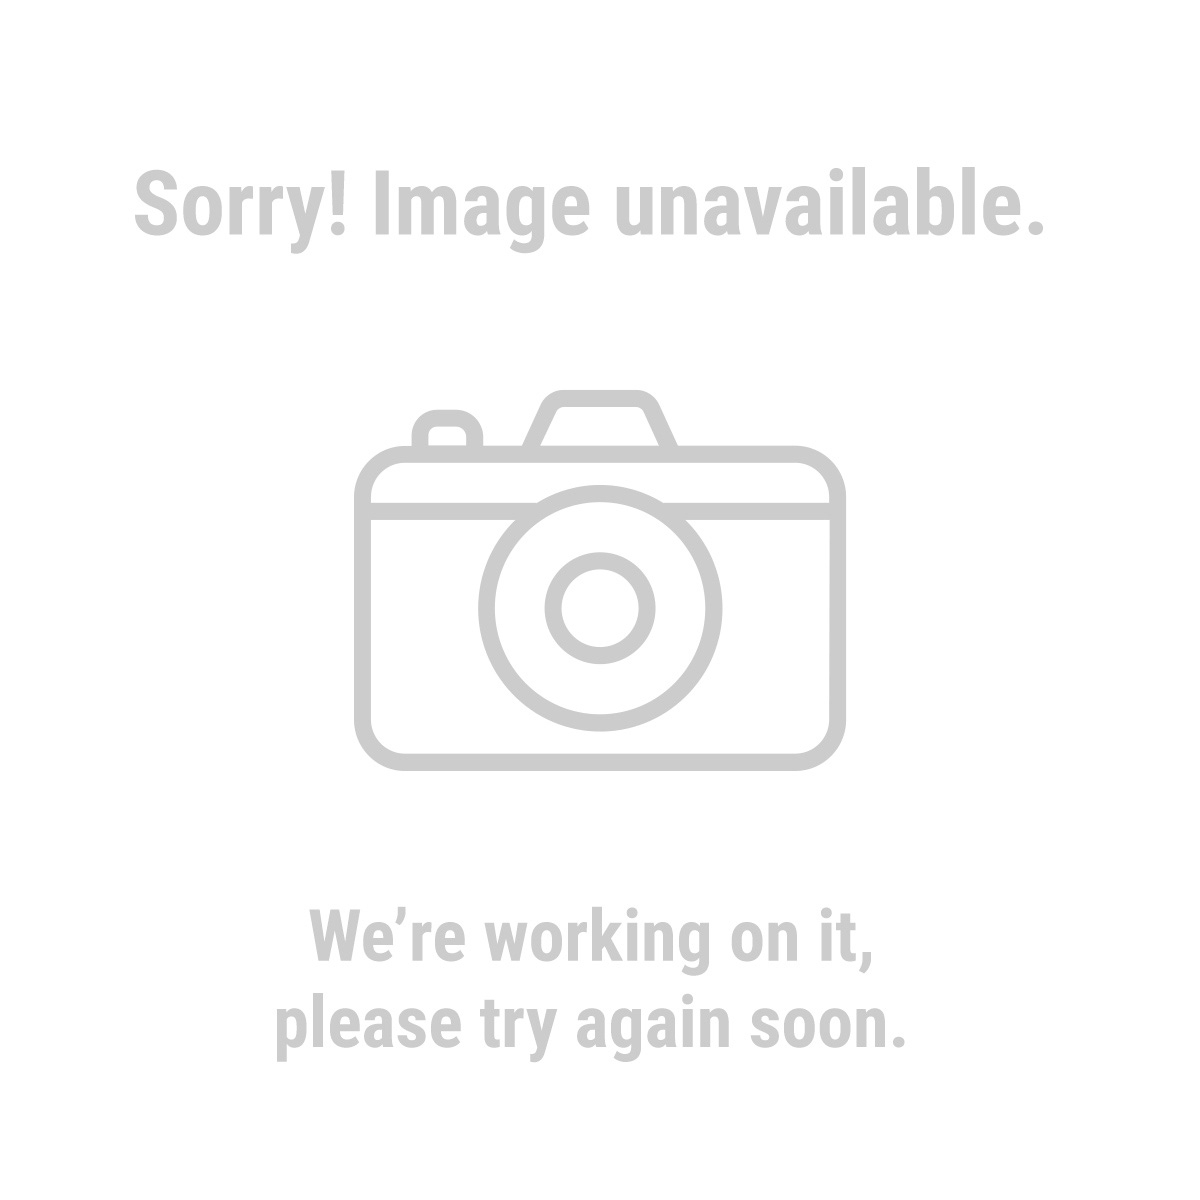 Pittsburgh 47872 16 Oz. Claw Hammer with Fiberglass Handle